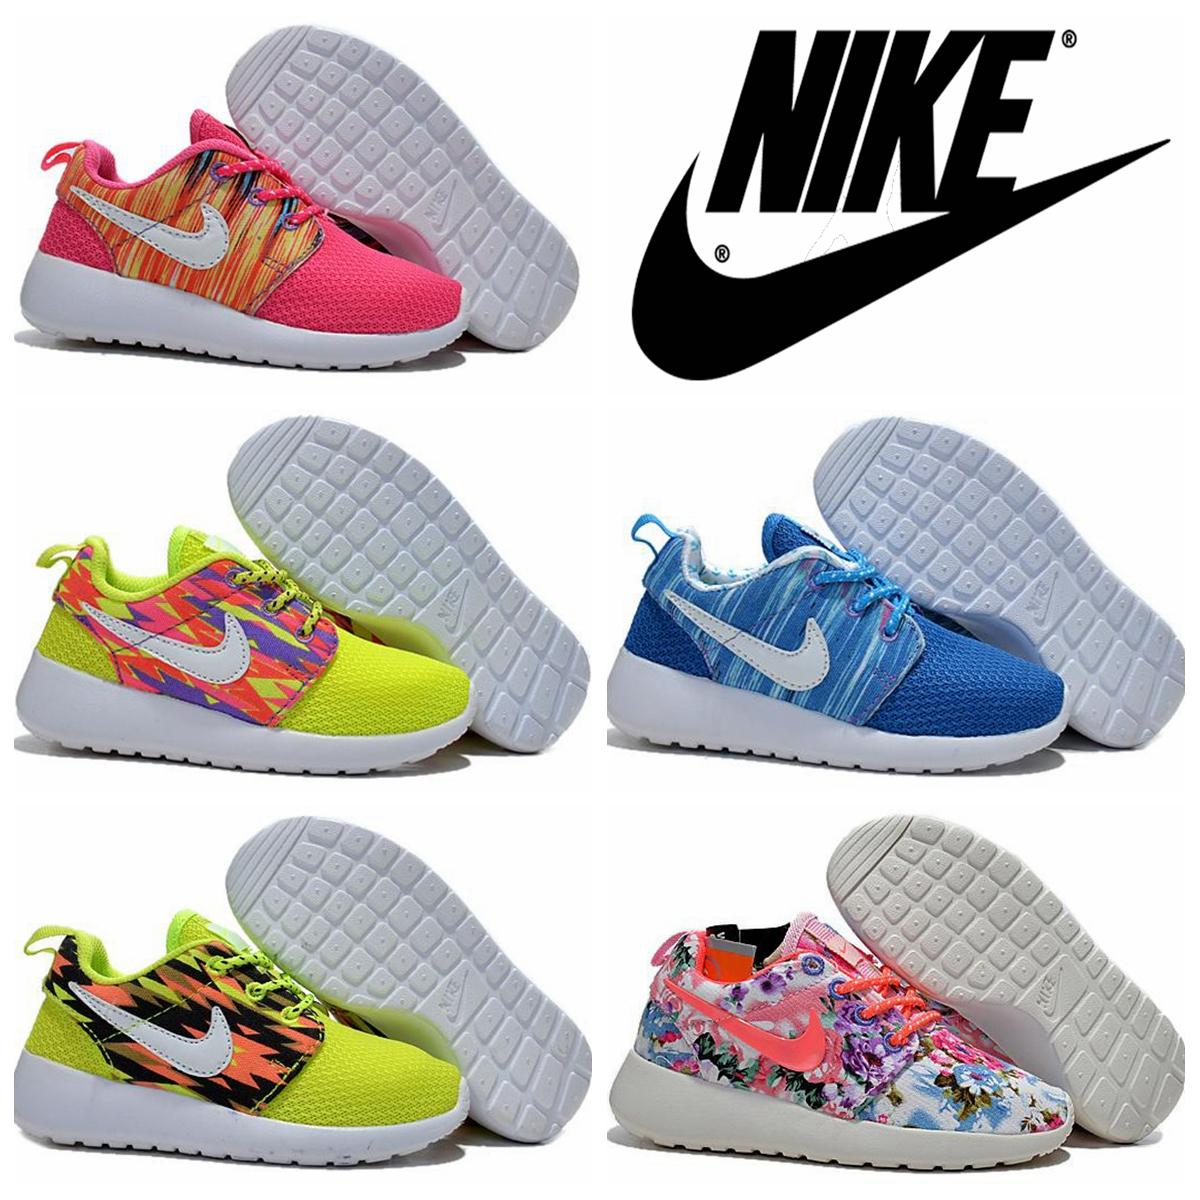 083e5626d7d4 Nike Roshe Run Children S Shoes Boys And Girls Running Shoes Kids Casual  Boots Nike Roshes Runs Babys Athletic Sneakers Sport Shoes Sports Direct  Kids ...